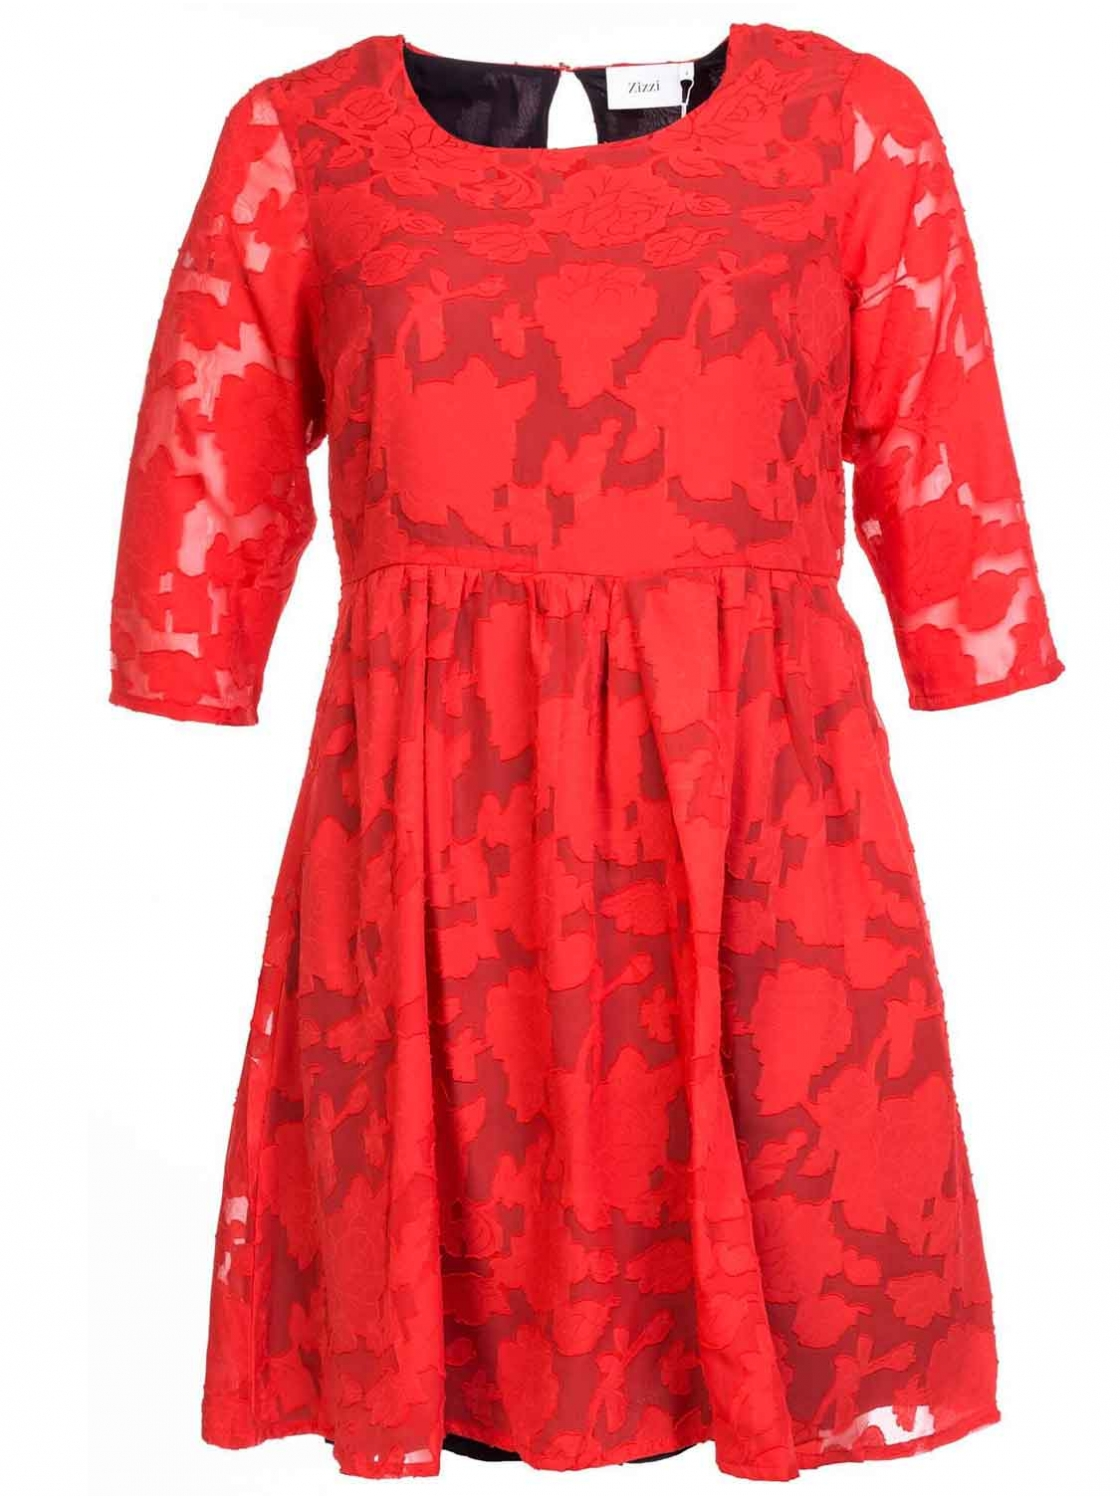 Robe rouge florale